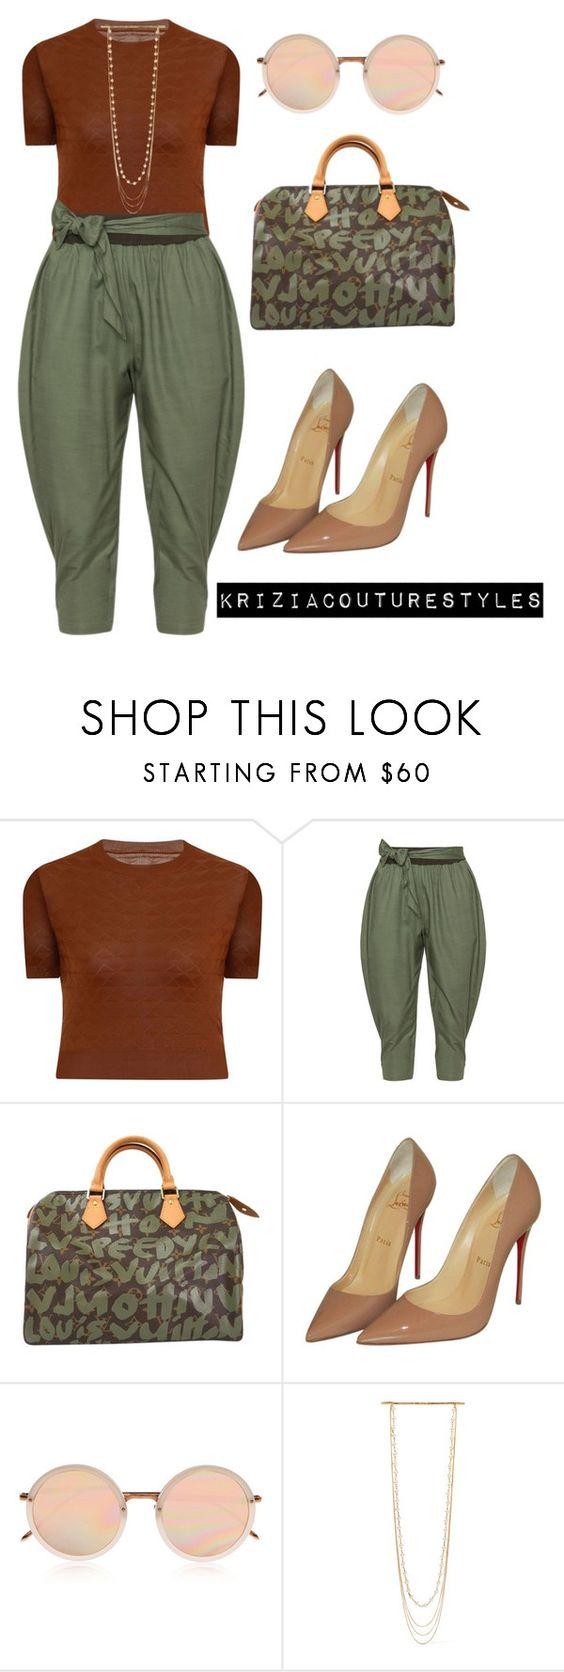 """""""Just Making A Run..."""" by kriziacouture ❤ liked on Polyvore featuring Elvi, Isolde Roth, Louis Vuitton, Christian Louboutin, Linda Farrow and Marc Jacobs"""